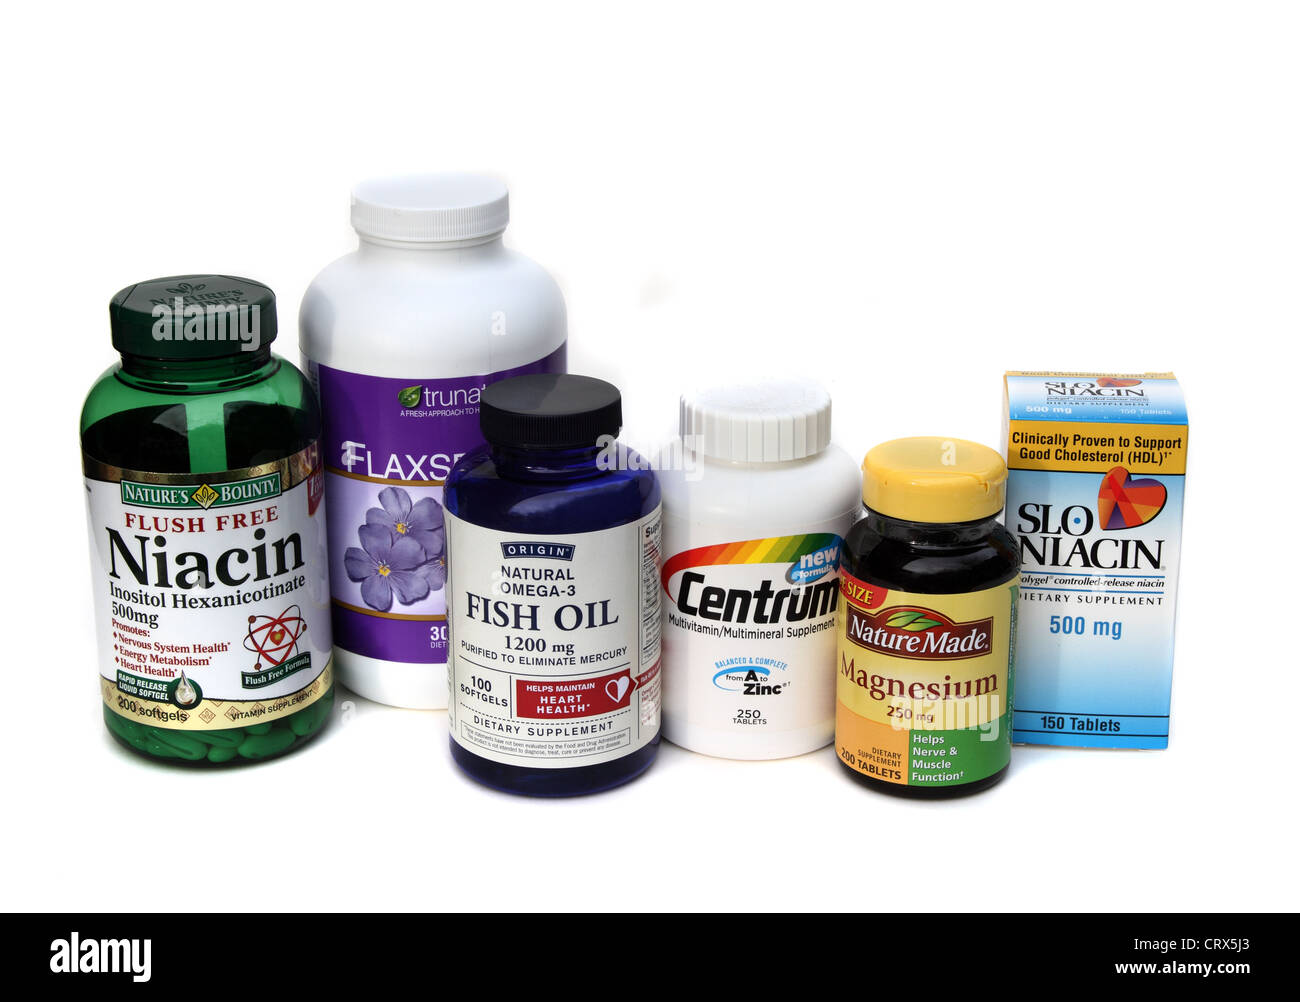 A group of vitamins and supplements. Includes Niacin, fish oil, magnesium, a multi vitamin and flaxseed oil - Stock Image